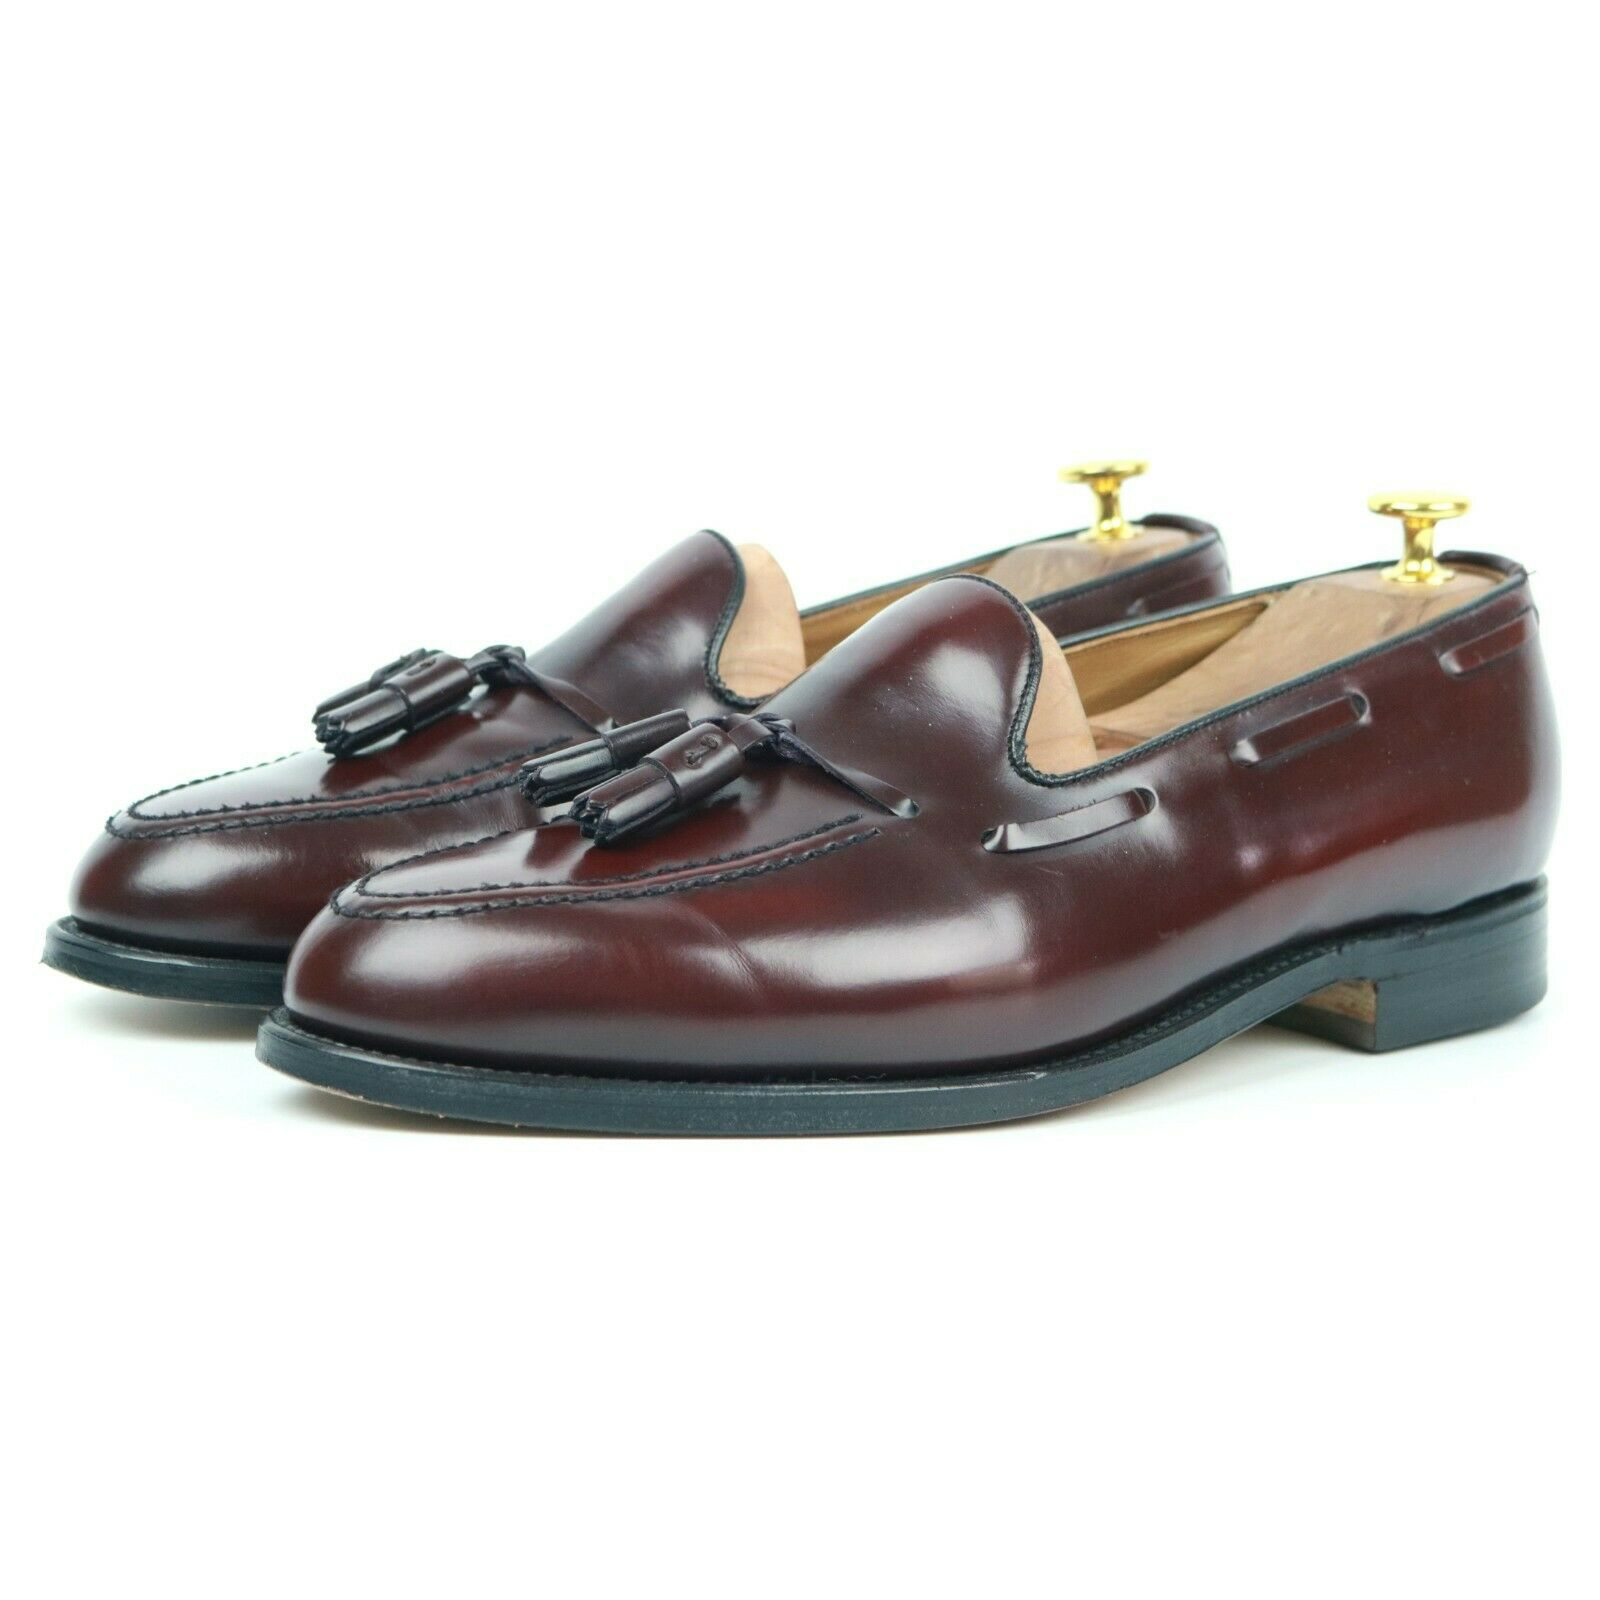 Alfred Ssilver 'Harrow' Burgundy Leather Tassel Loafers Men's shoes UK 9 EX